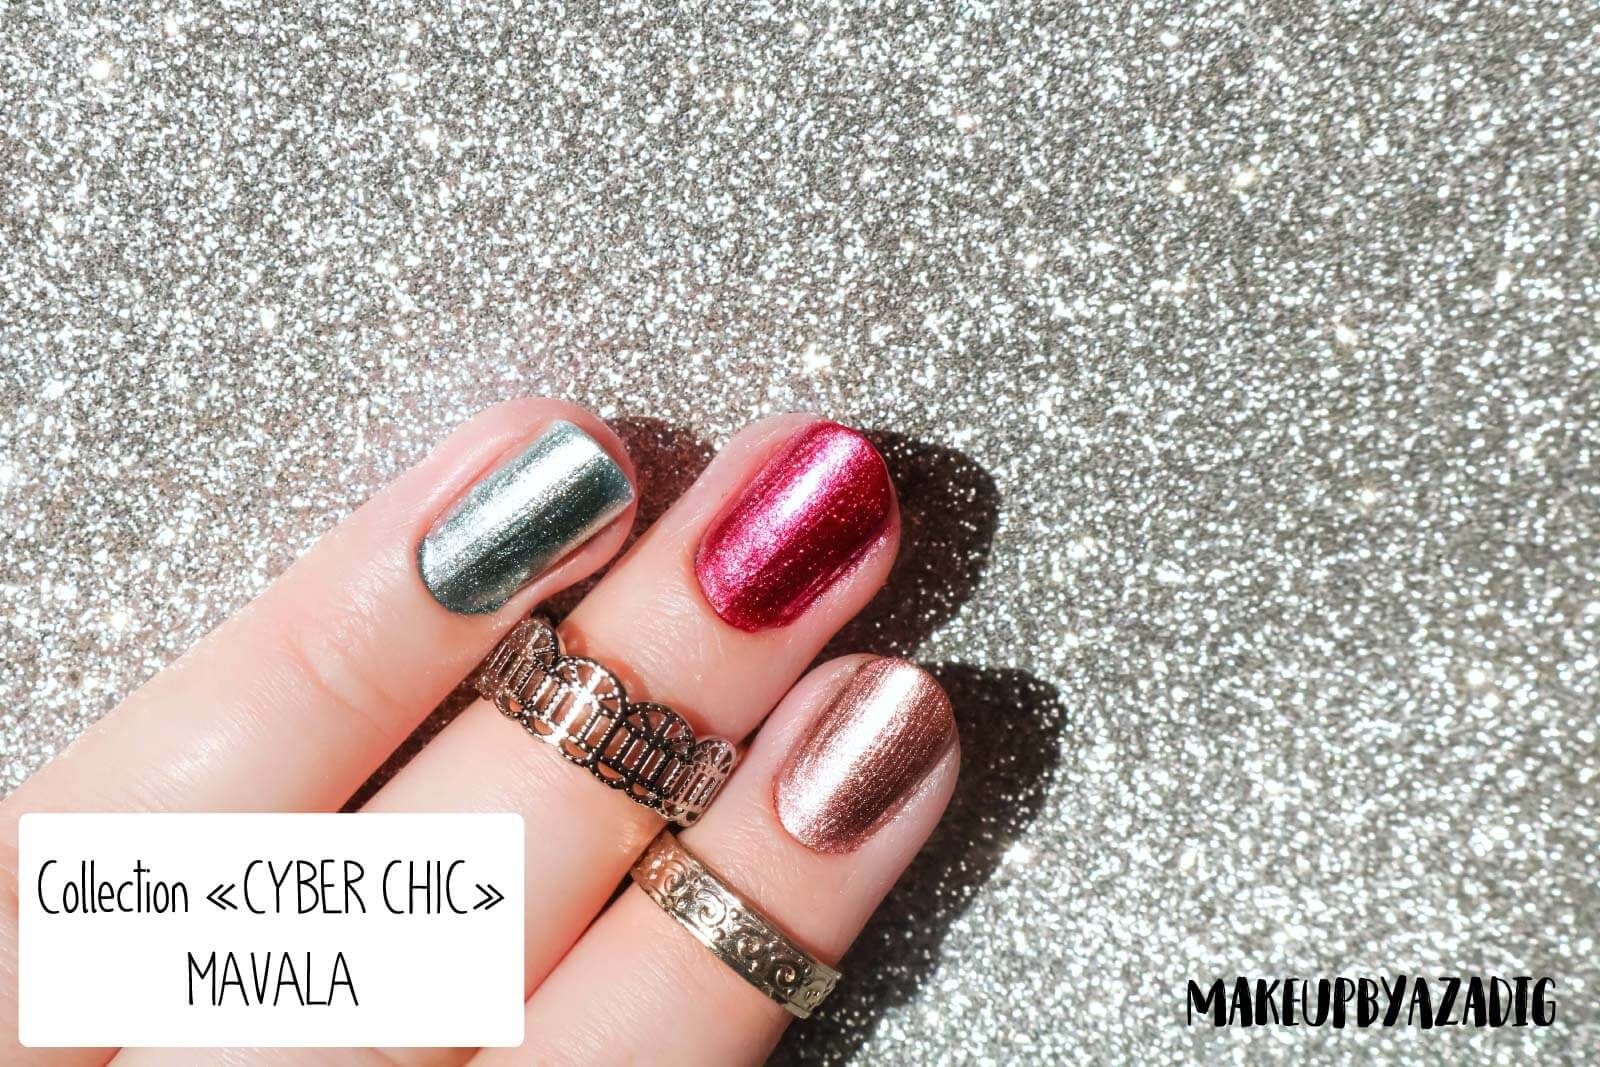 revue-collection-vernis-nails-cyber-chic-fetes-noel-metallique-gold-silver-makeupbyazadig-swatch-avis-prix-swatches